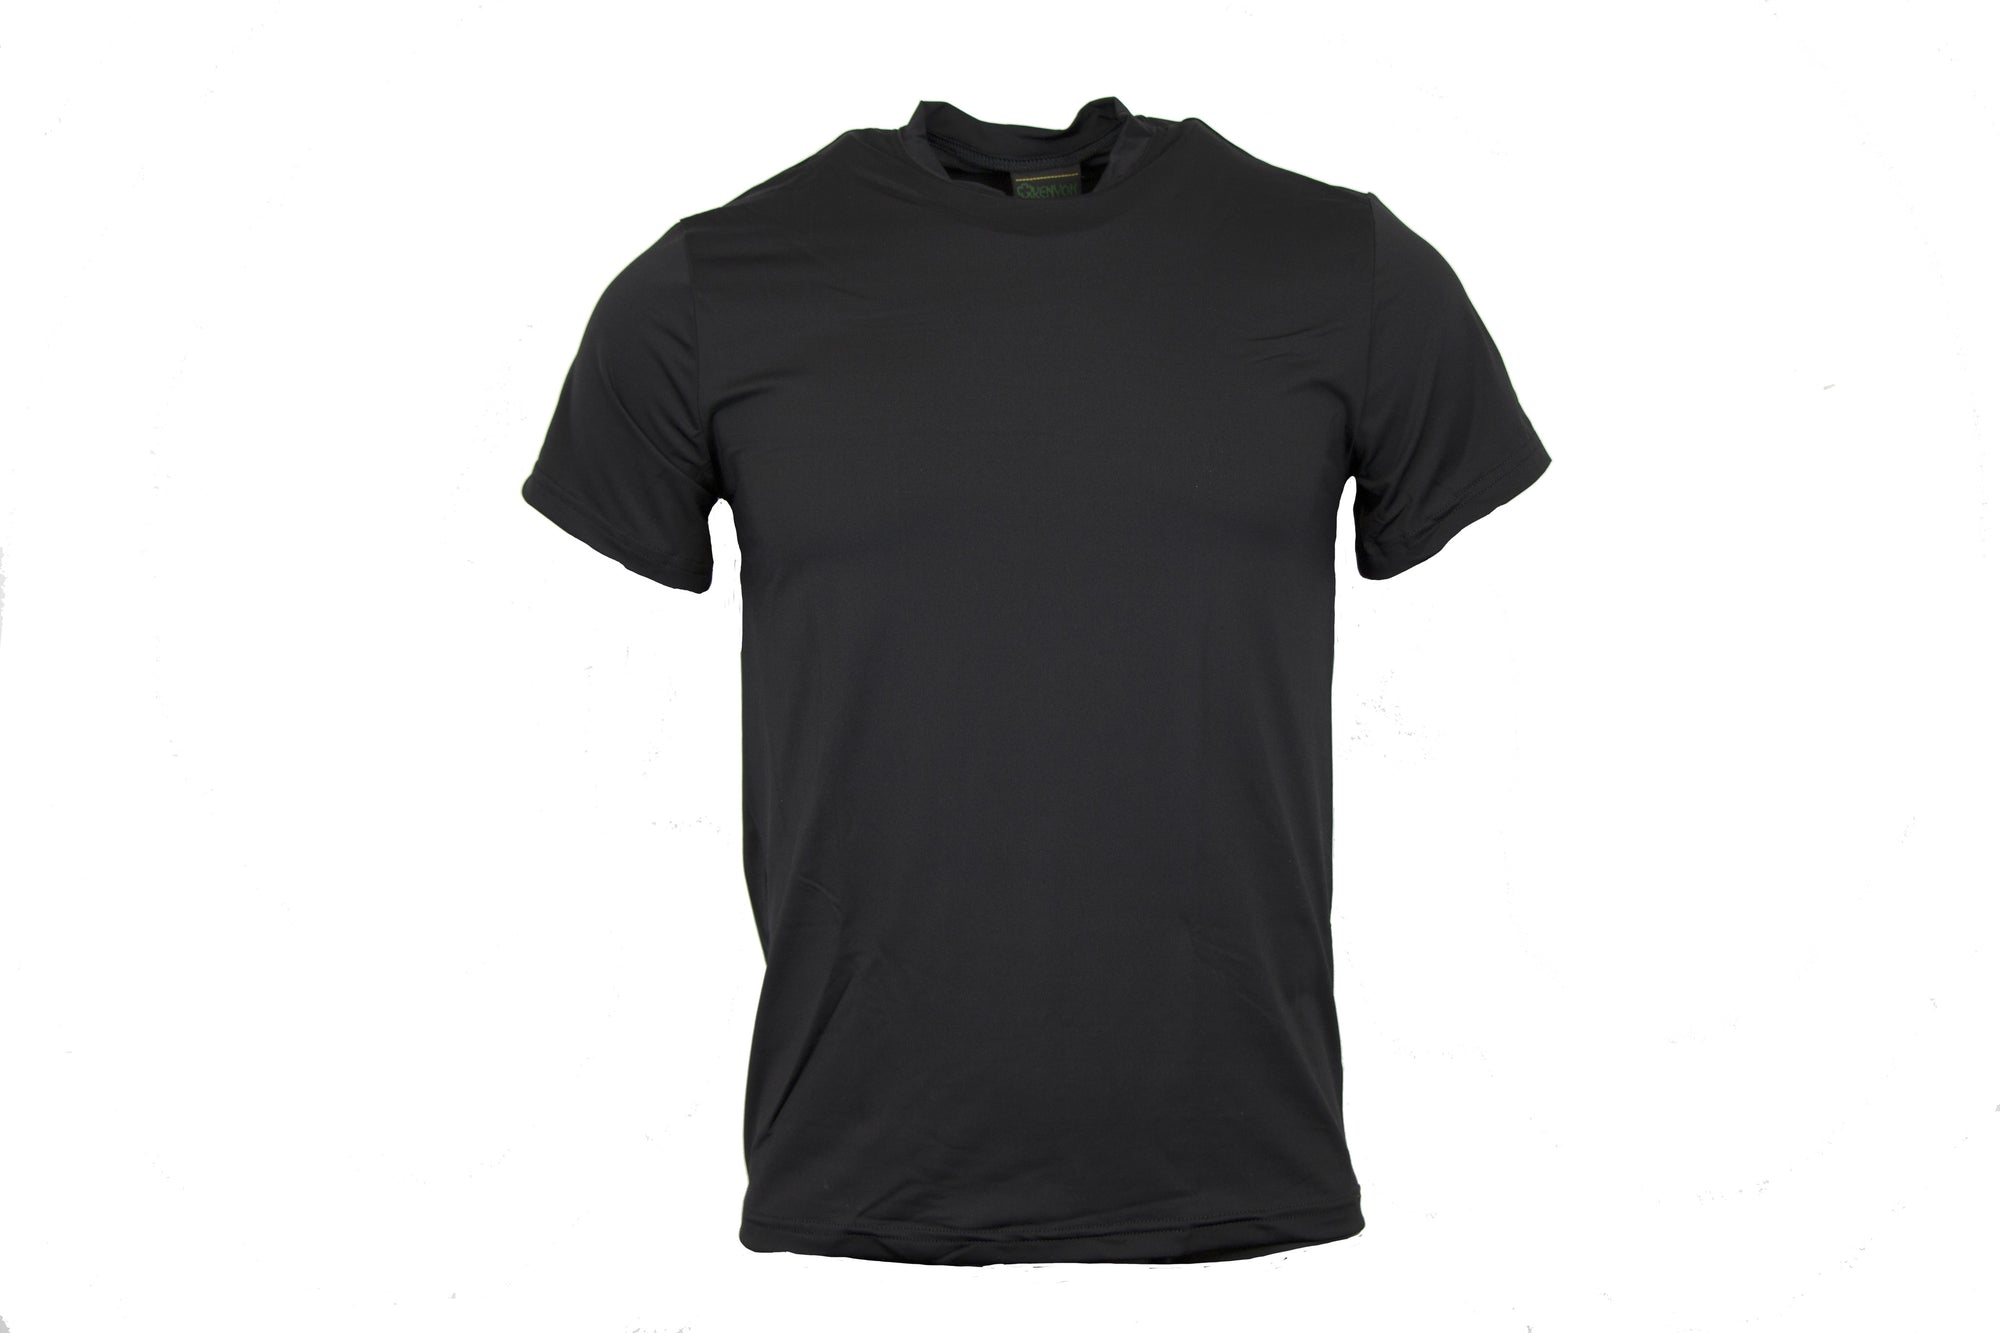 Kenyon Everywear Men's Short Sleeve Top